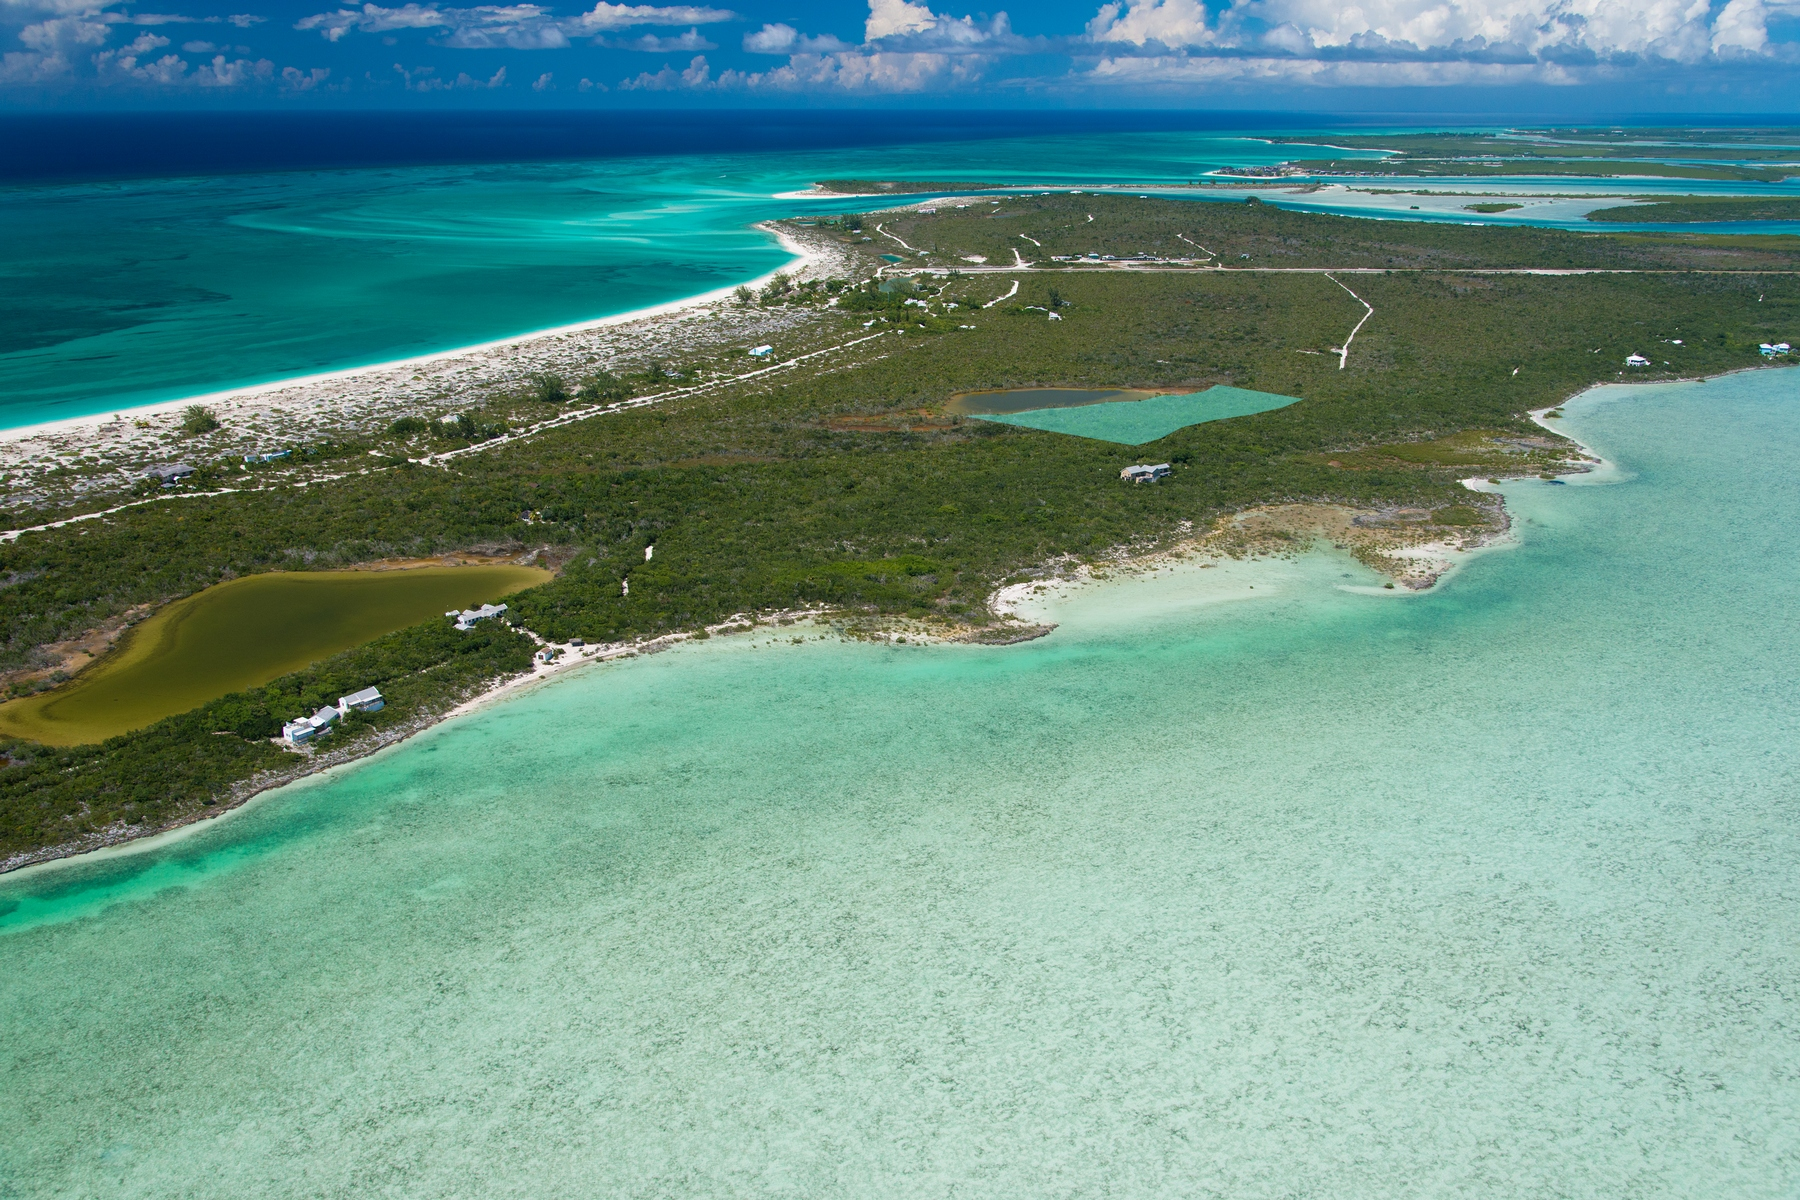 Land for Sale at Pine Cay Land Gardenview Pine Cay, Pine Cay, TCI Turks And Caicos Islands